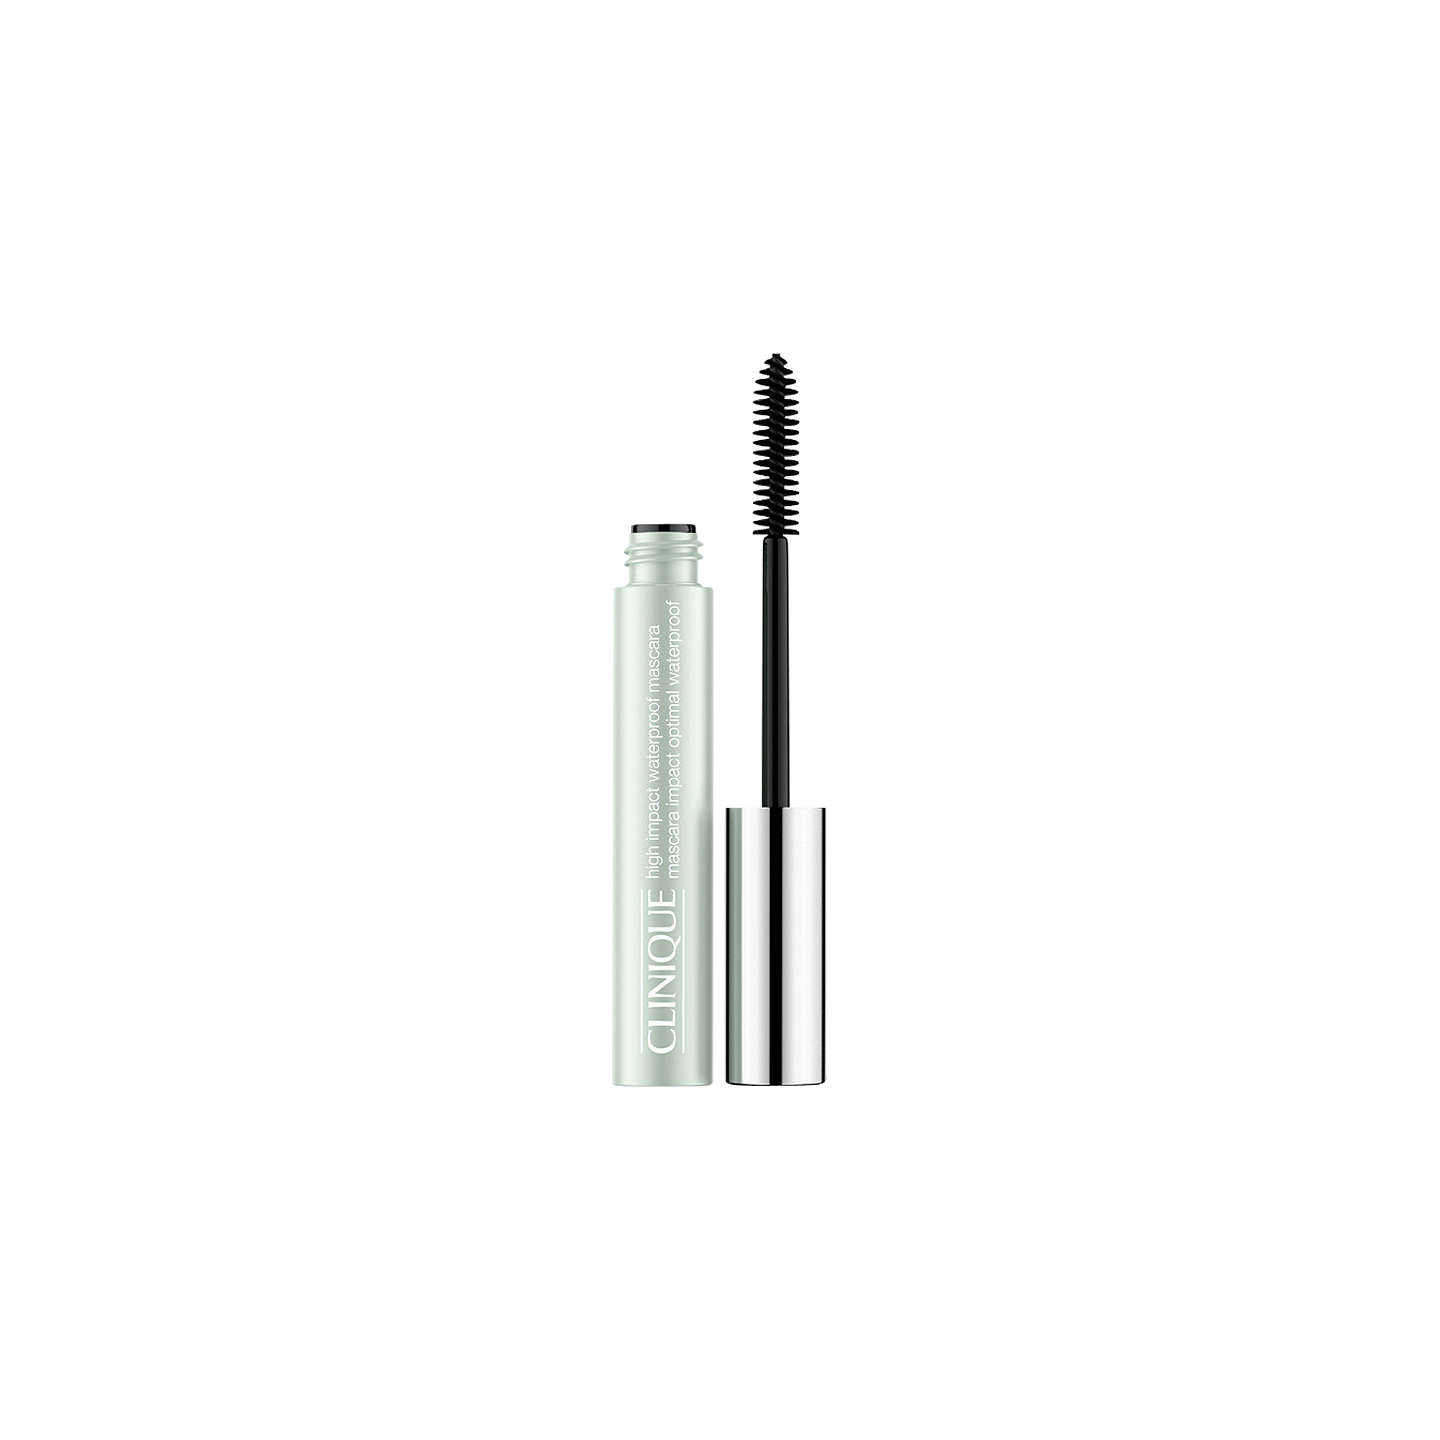 BuyClinique High Impact Waterproof Mascara, 8ml, Black Online at johnlewis.com